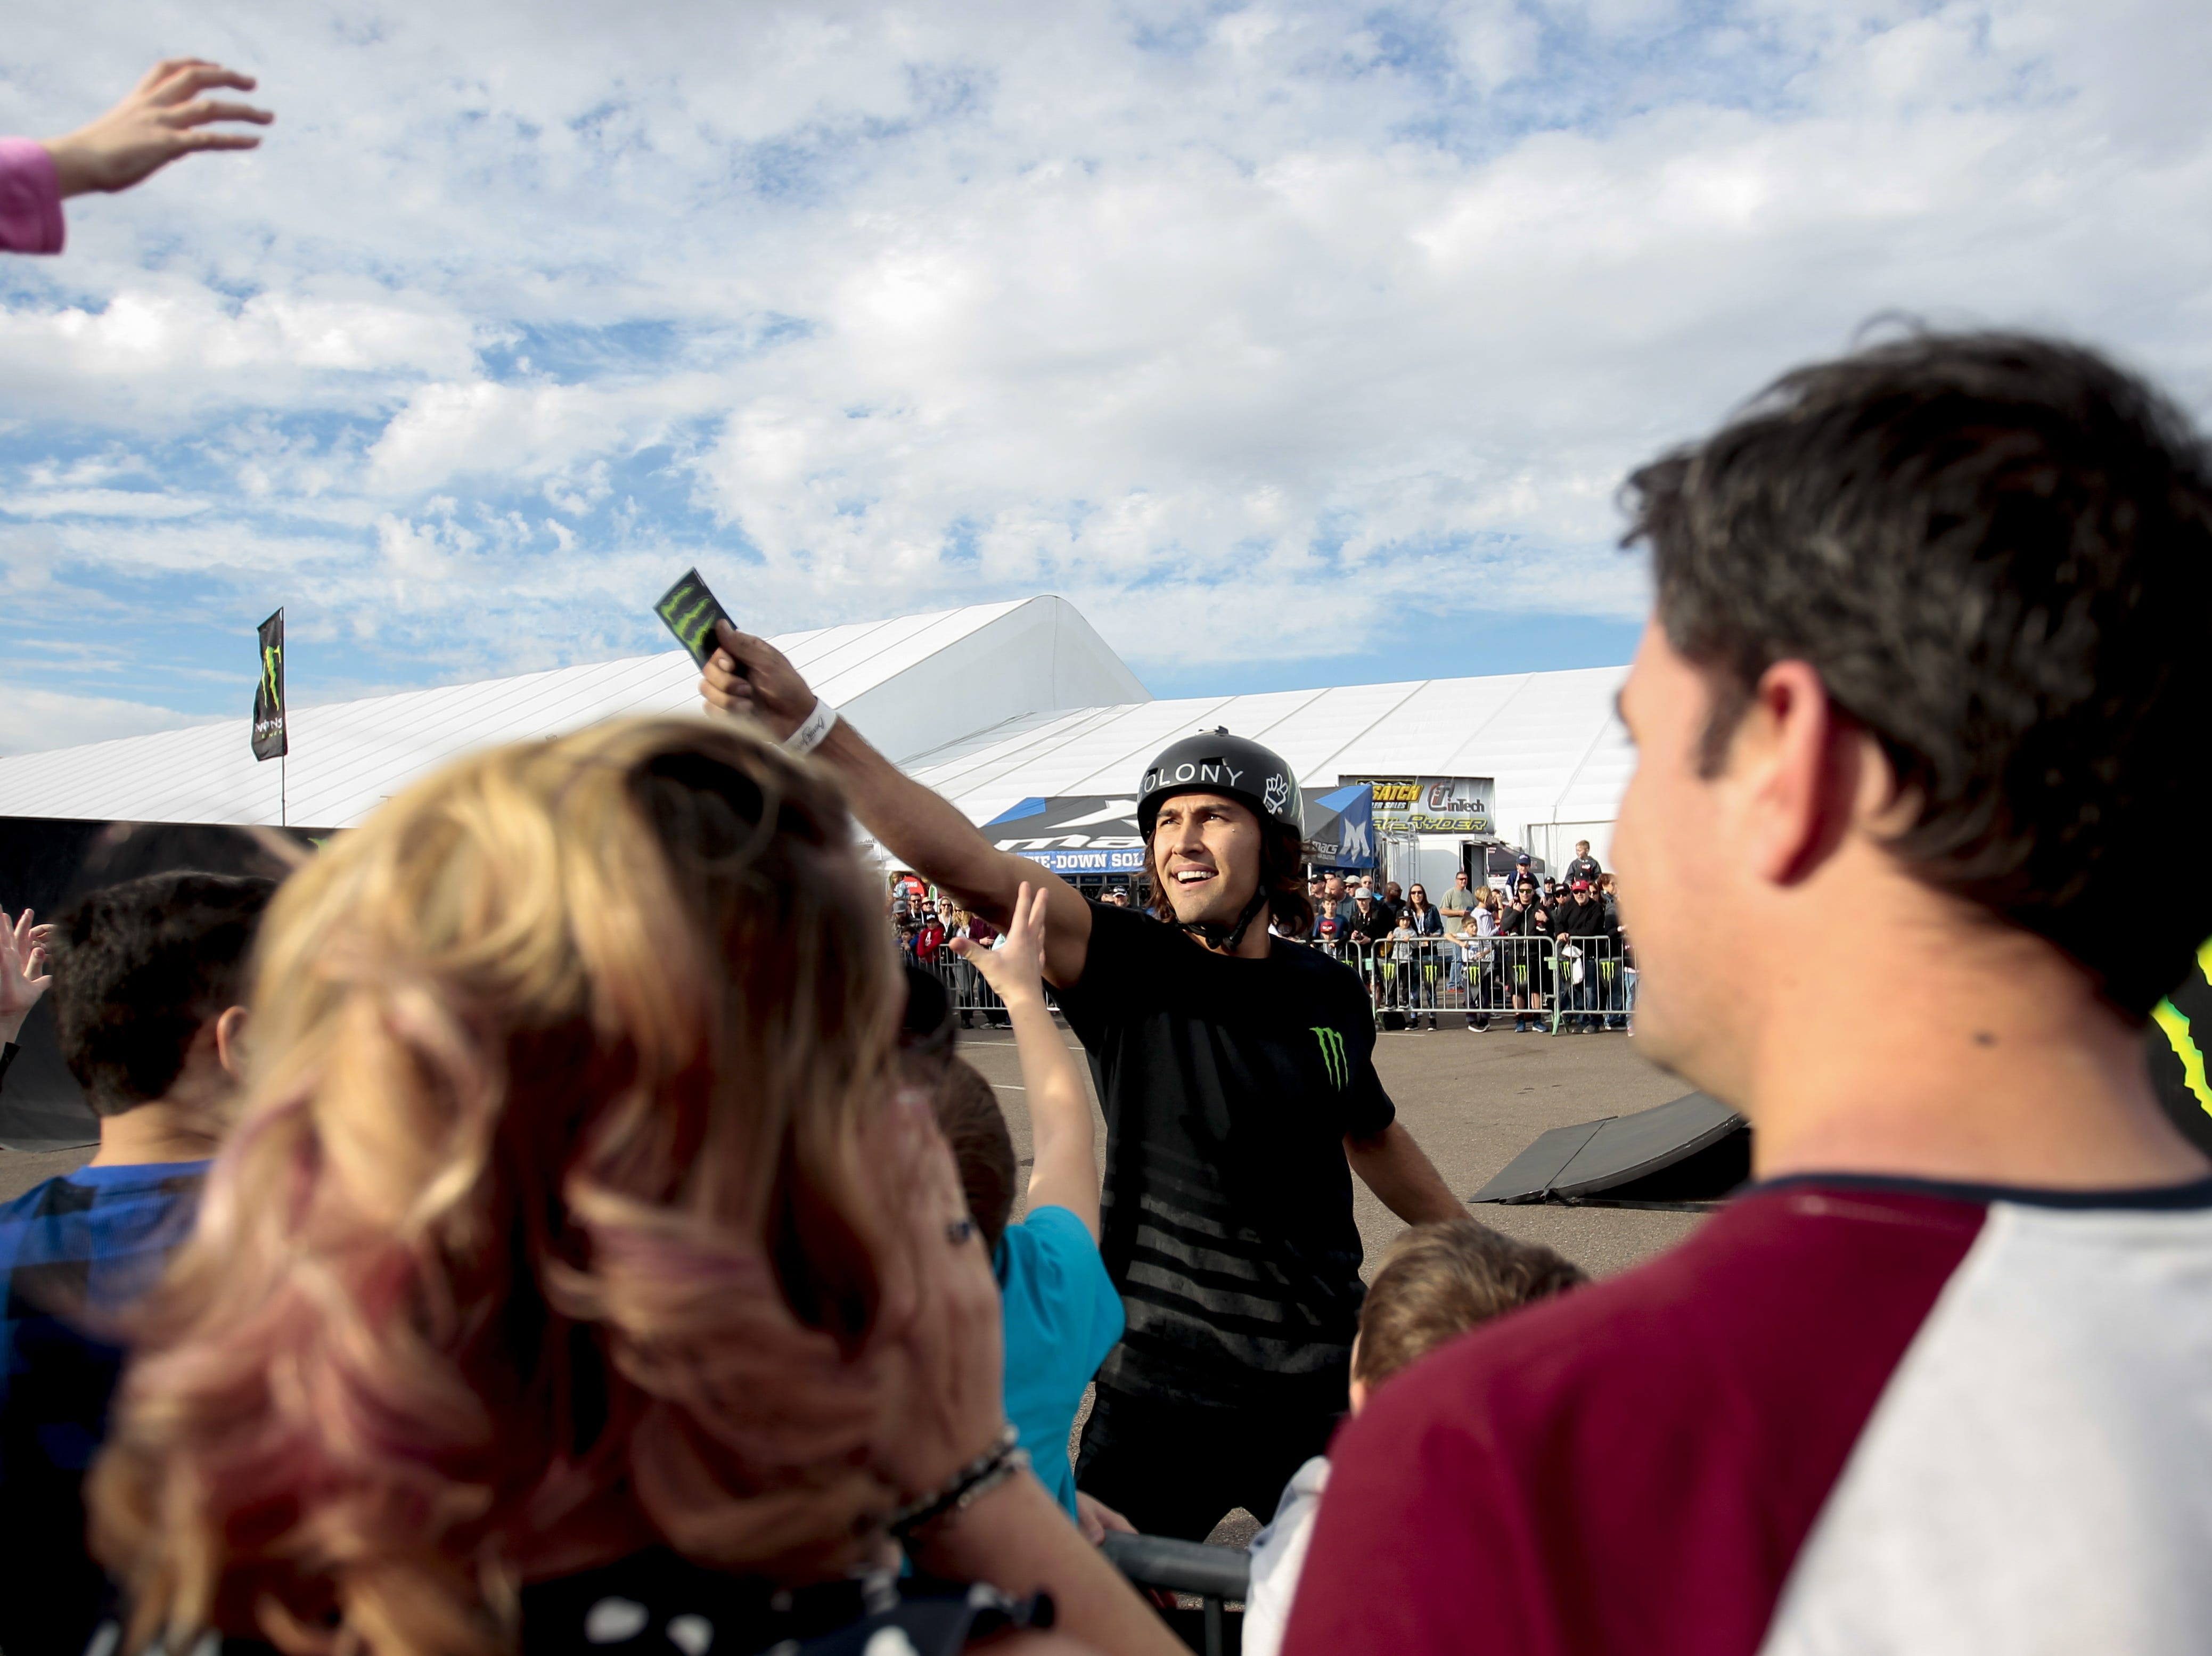 Members of the Monster Energy BMX team hand out stickers to fans that are the loudest at the Barrett-Jackson Car Auction on Jan. 12, the first day of the event.